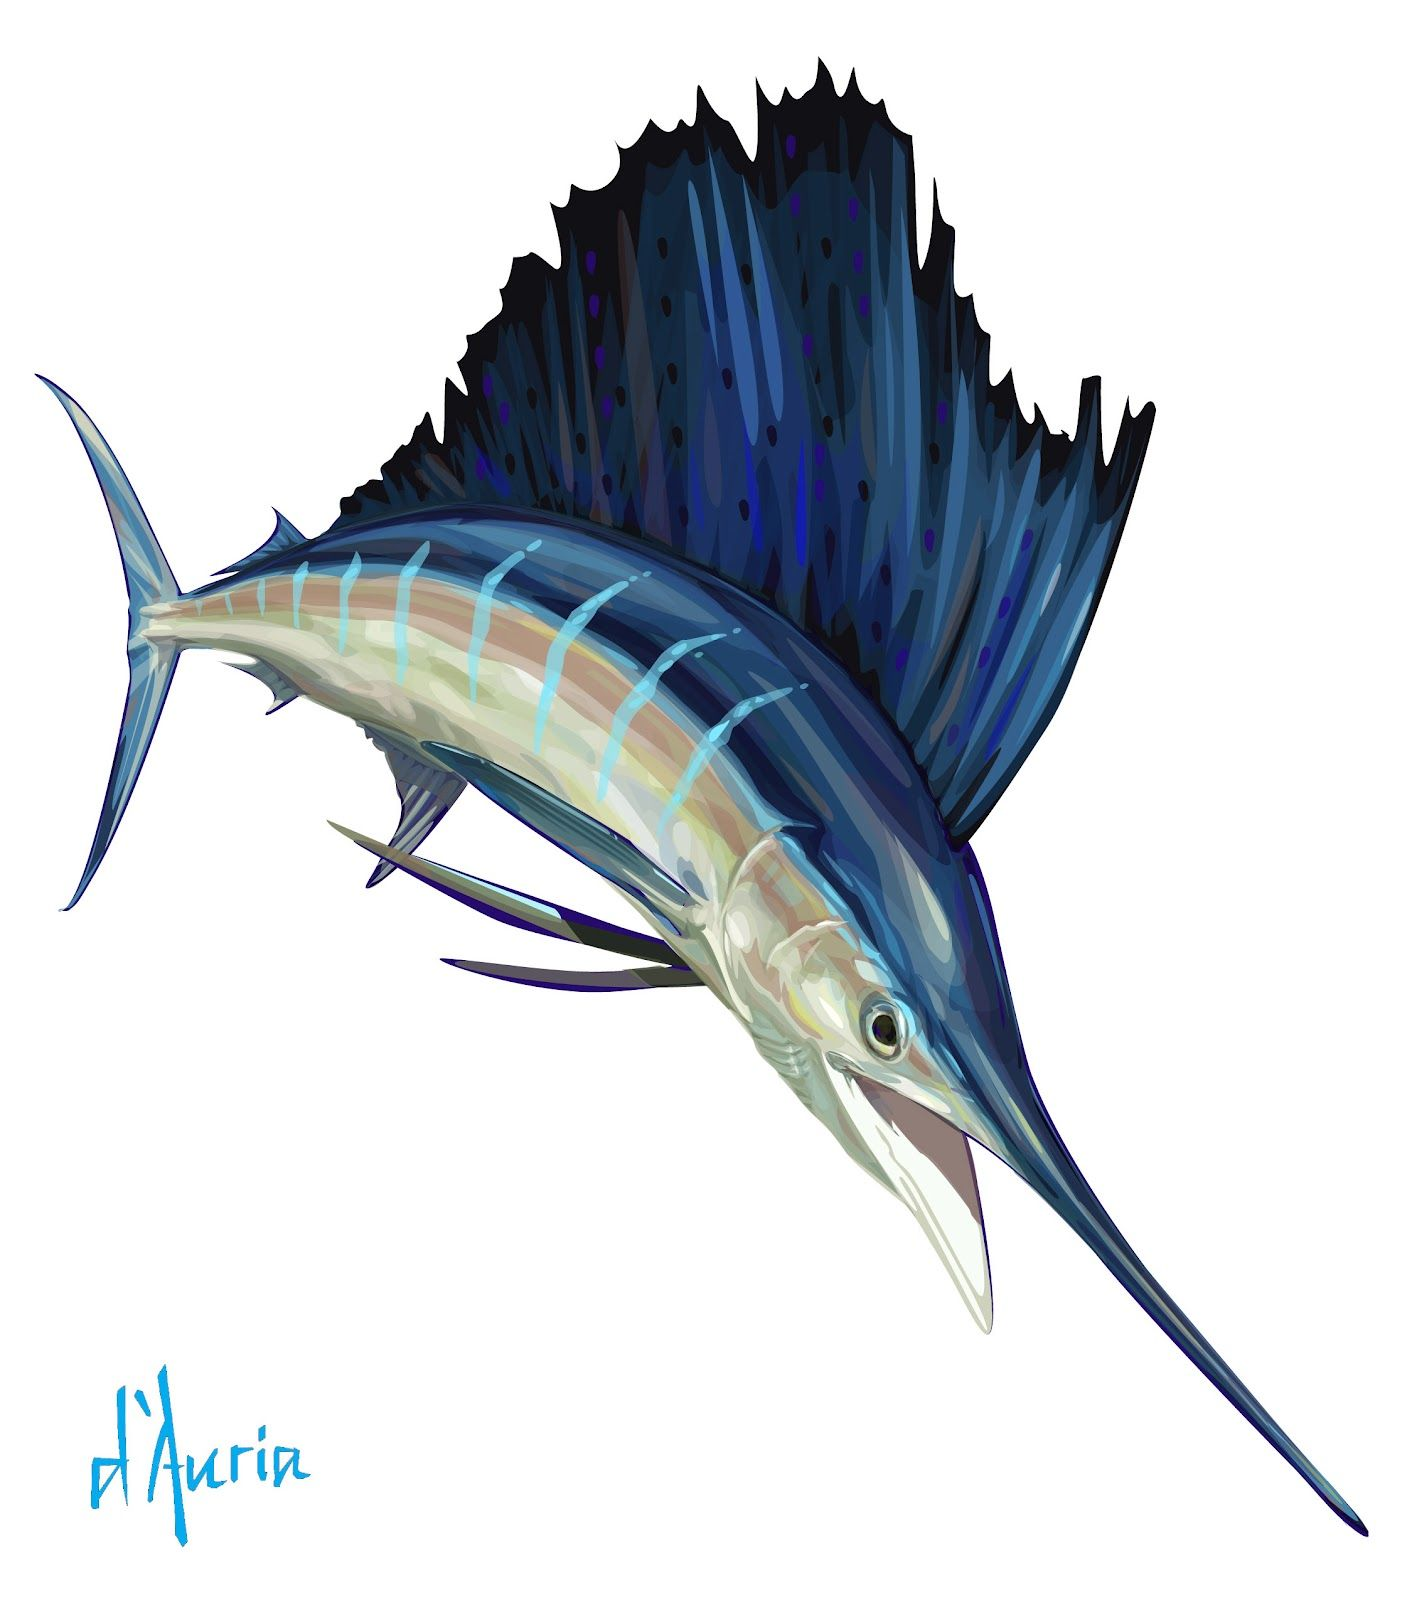 Sailfish | Sailfish | Pinterest | Fish, Fish art and Tattoo